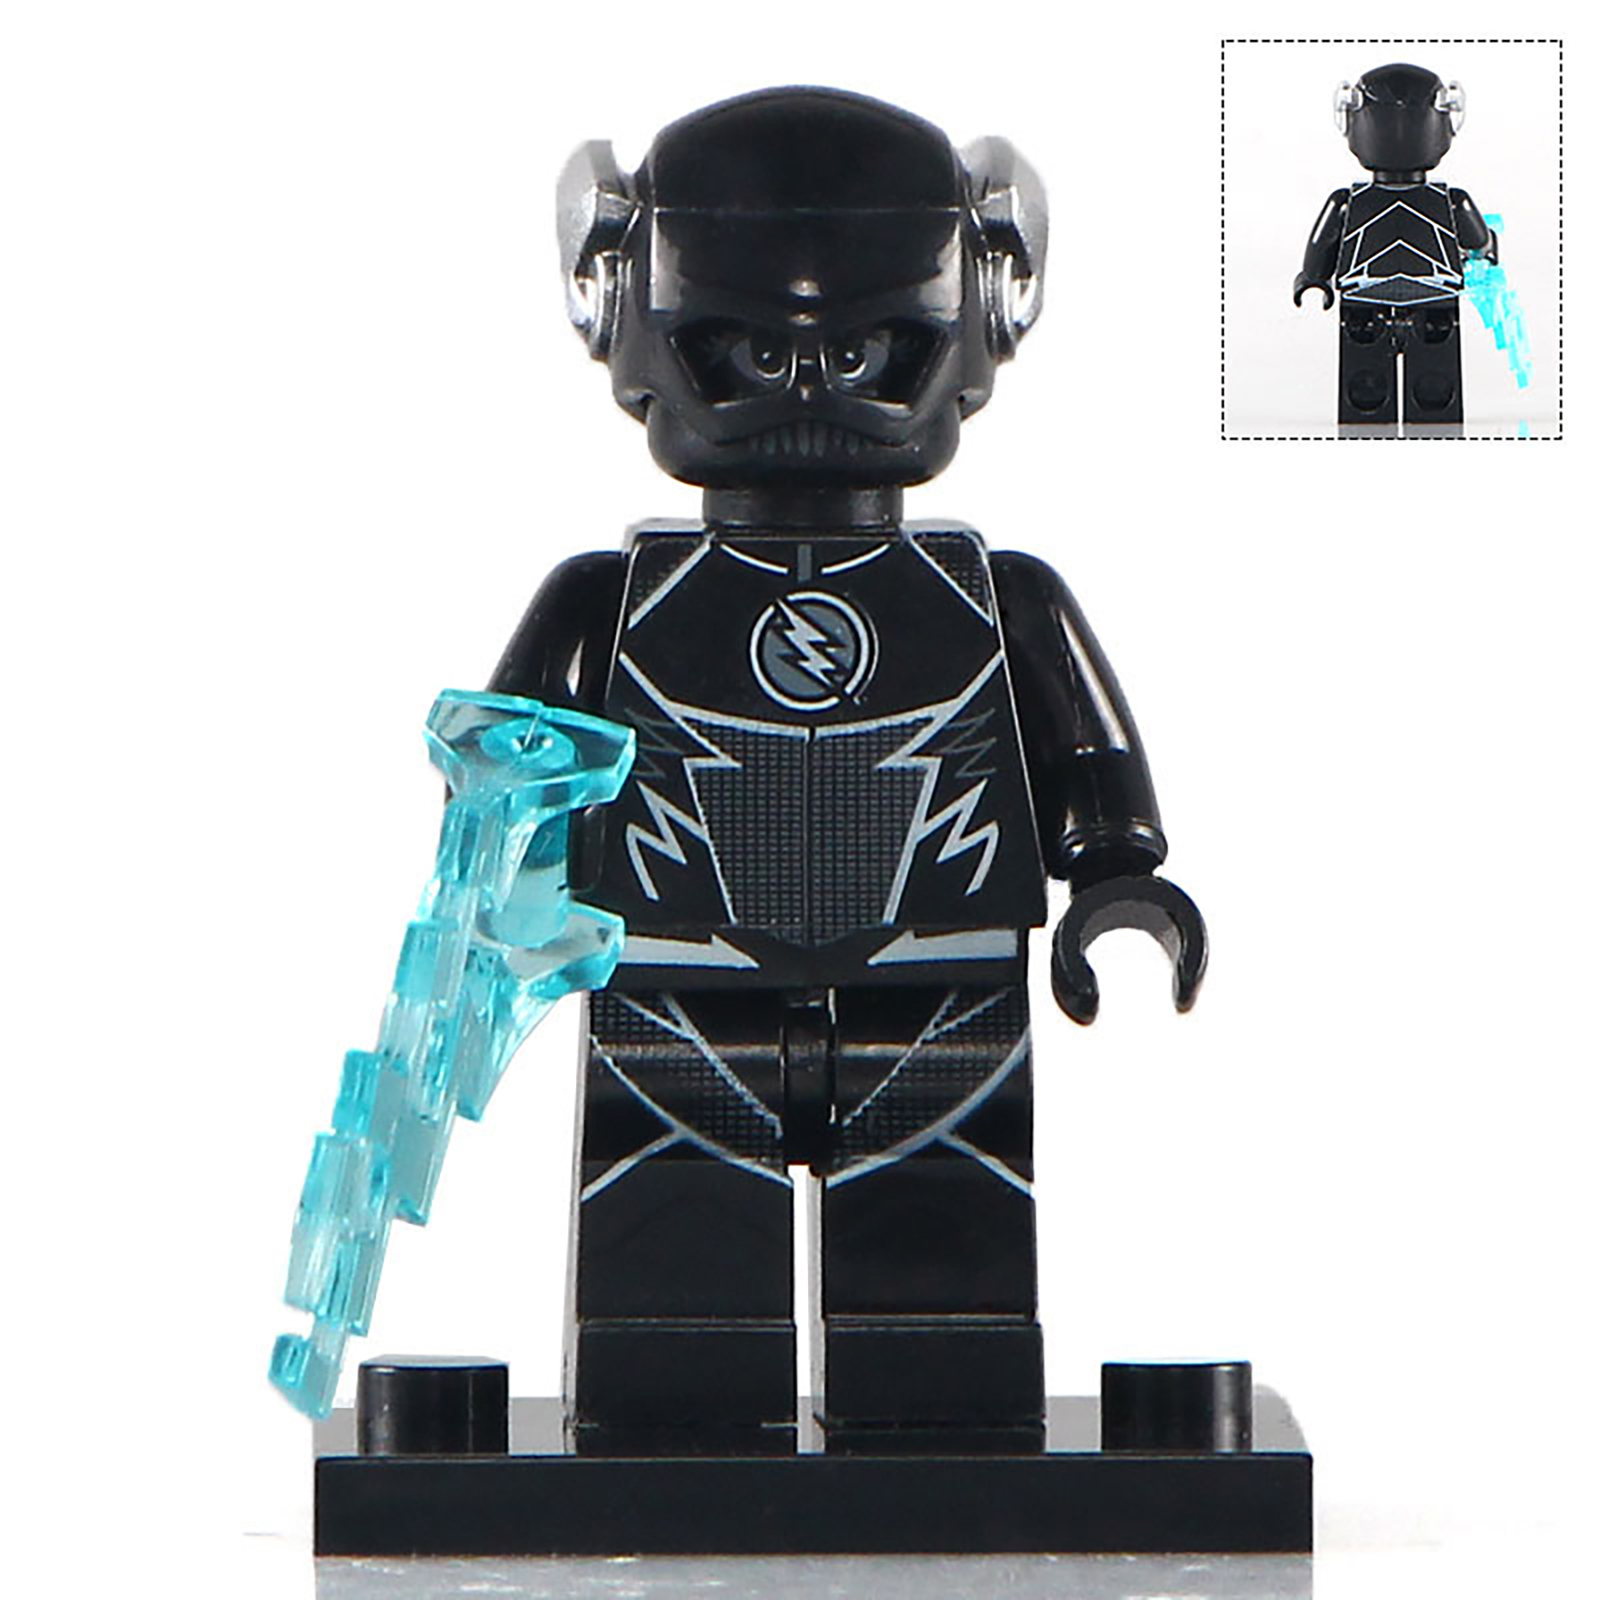 Zoom Black Flash DC The Flash Lego Minifigures Block Toy Gift for Kids